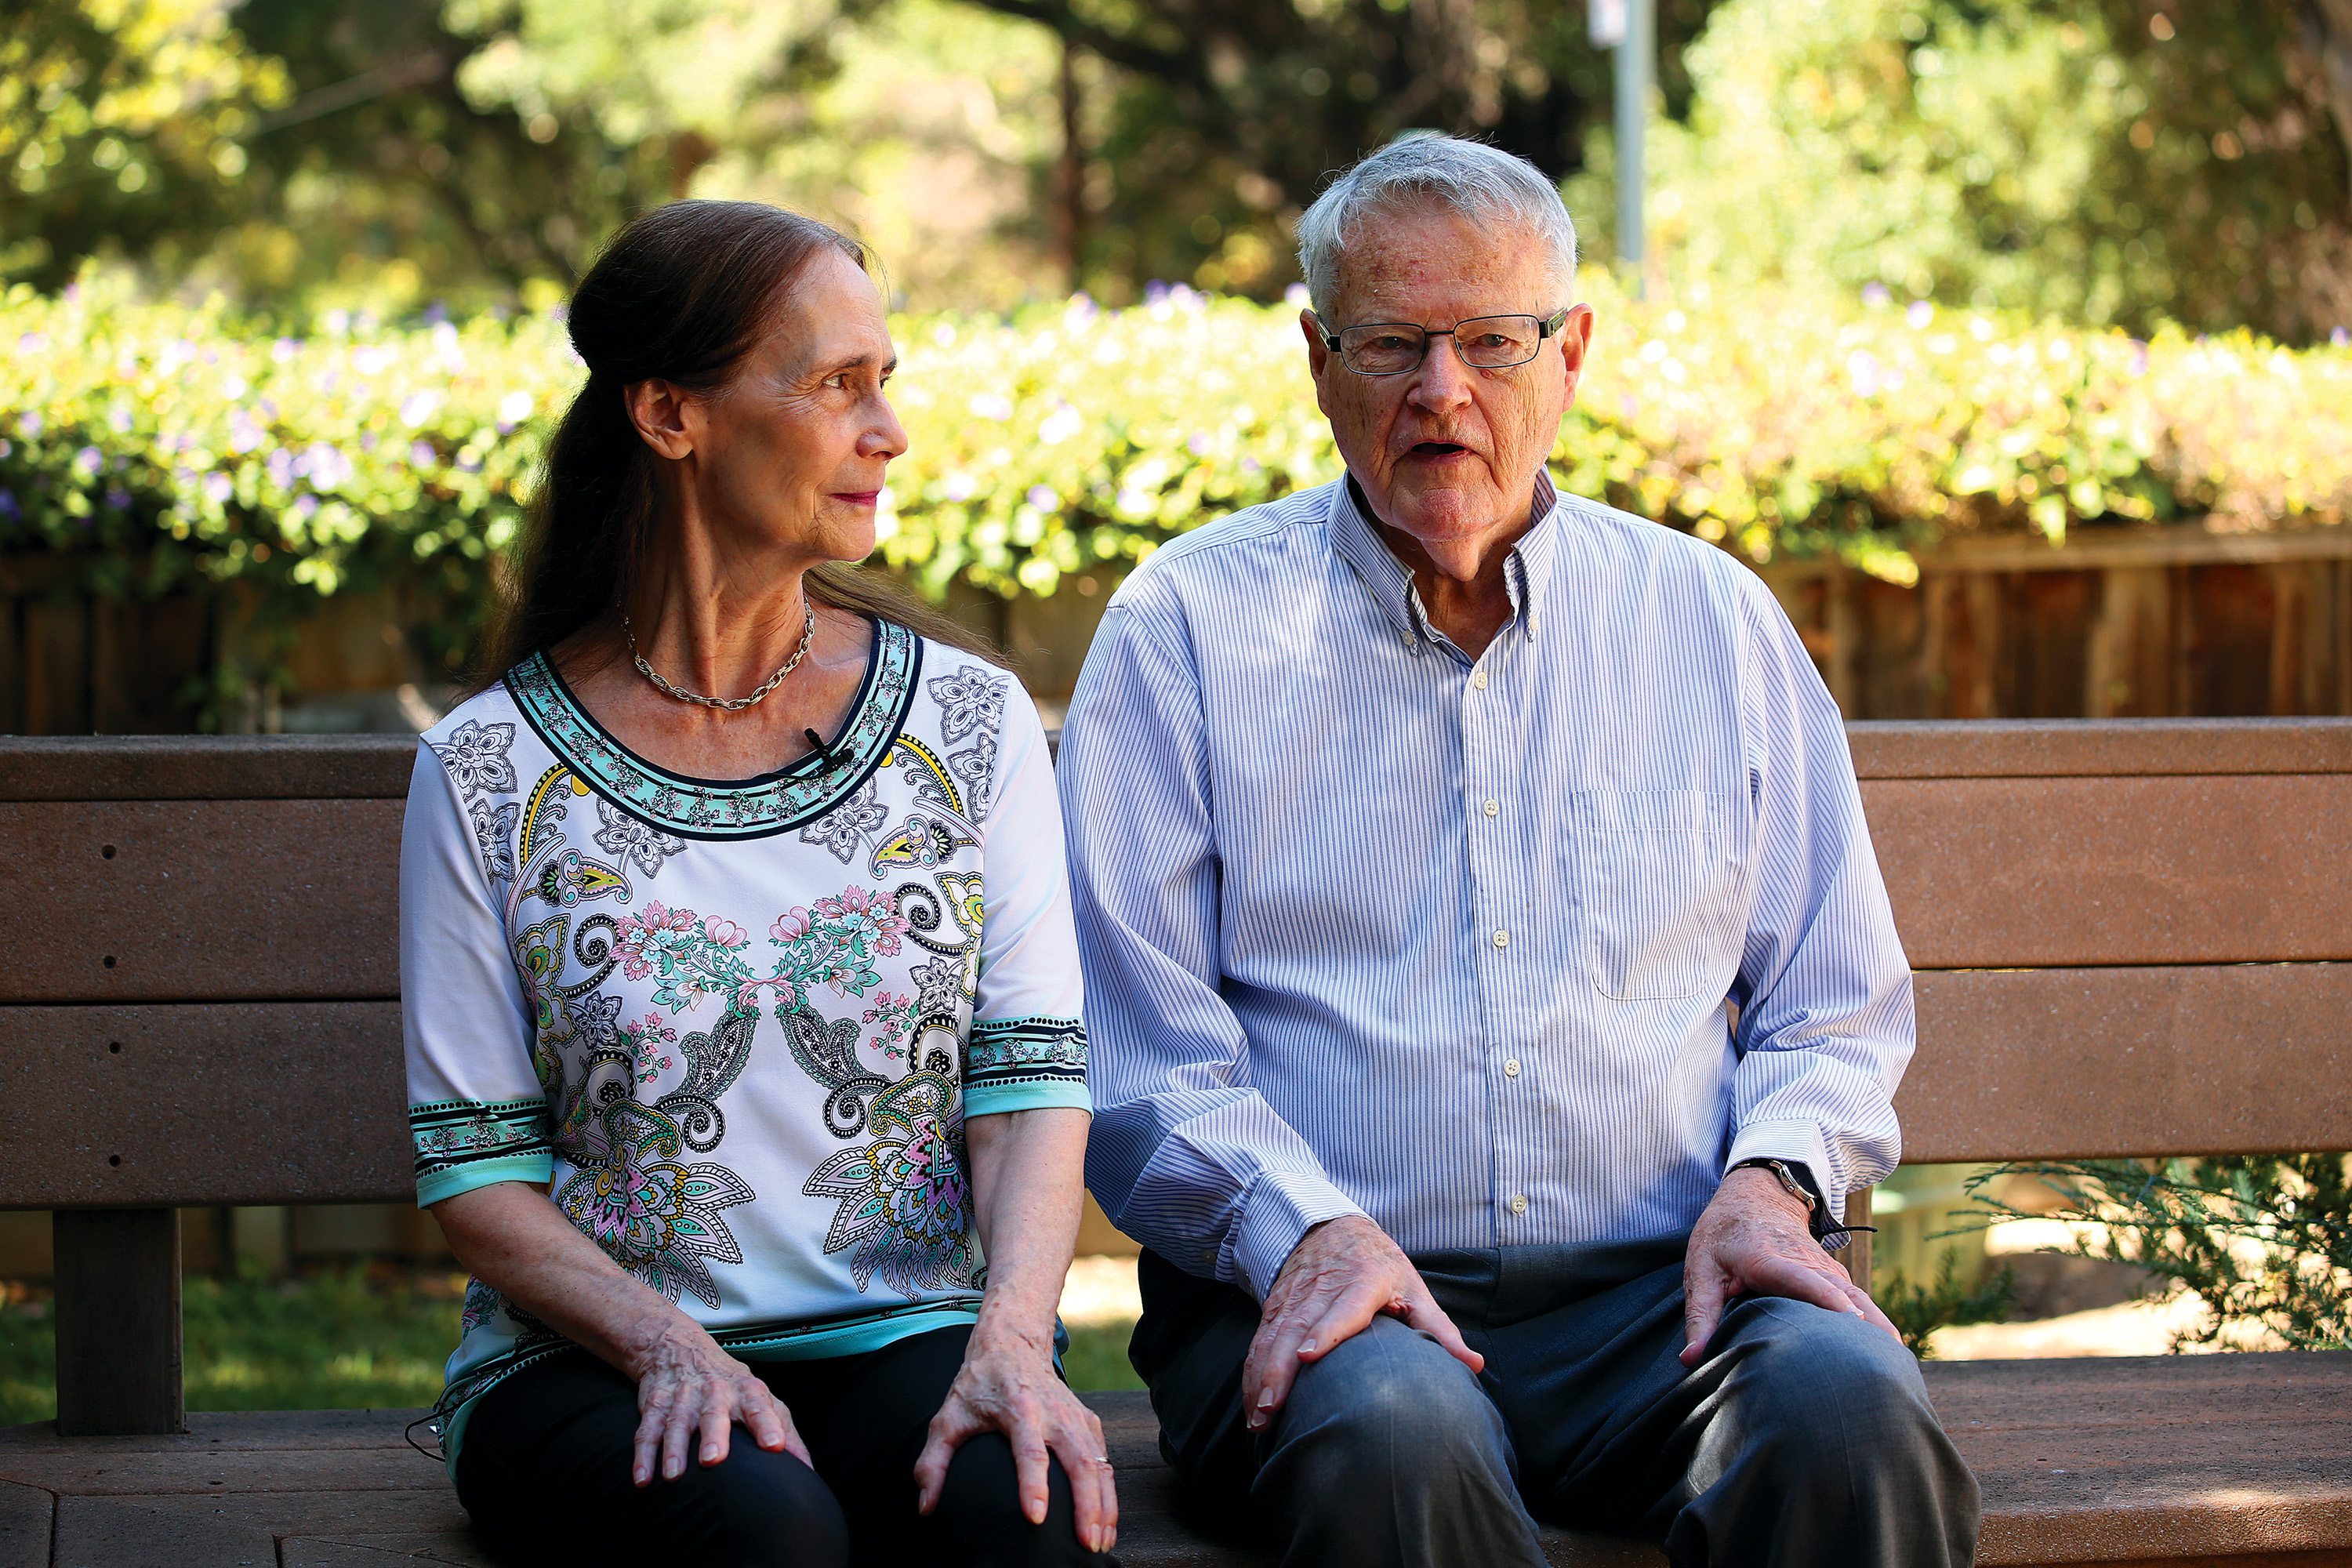 April Eiler and Palmer Pinney, longtime residents of Poe Street in Palo Alto, say that their neighborhood is not as cohesive as it once was, as new homeowners and renters have moved in. Photo by Sammy Dallal.